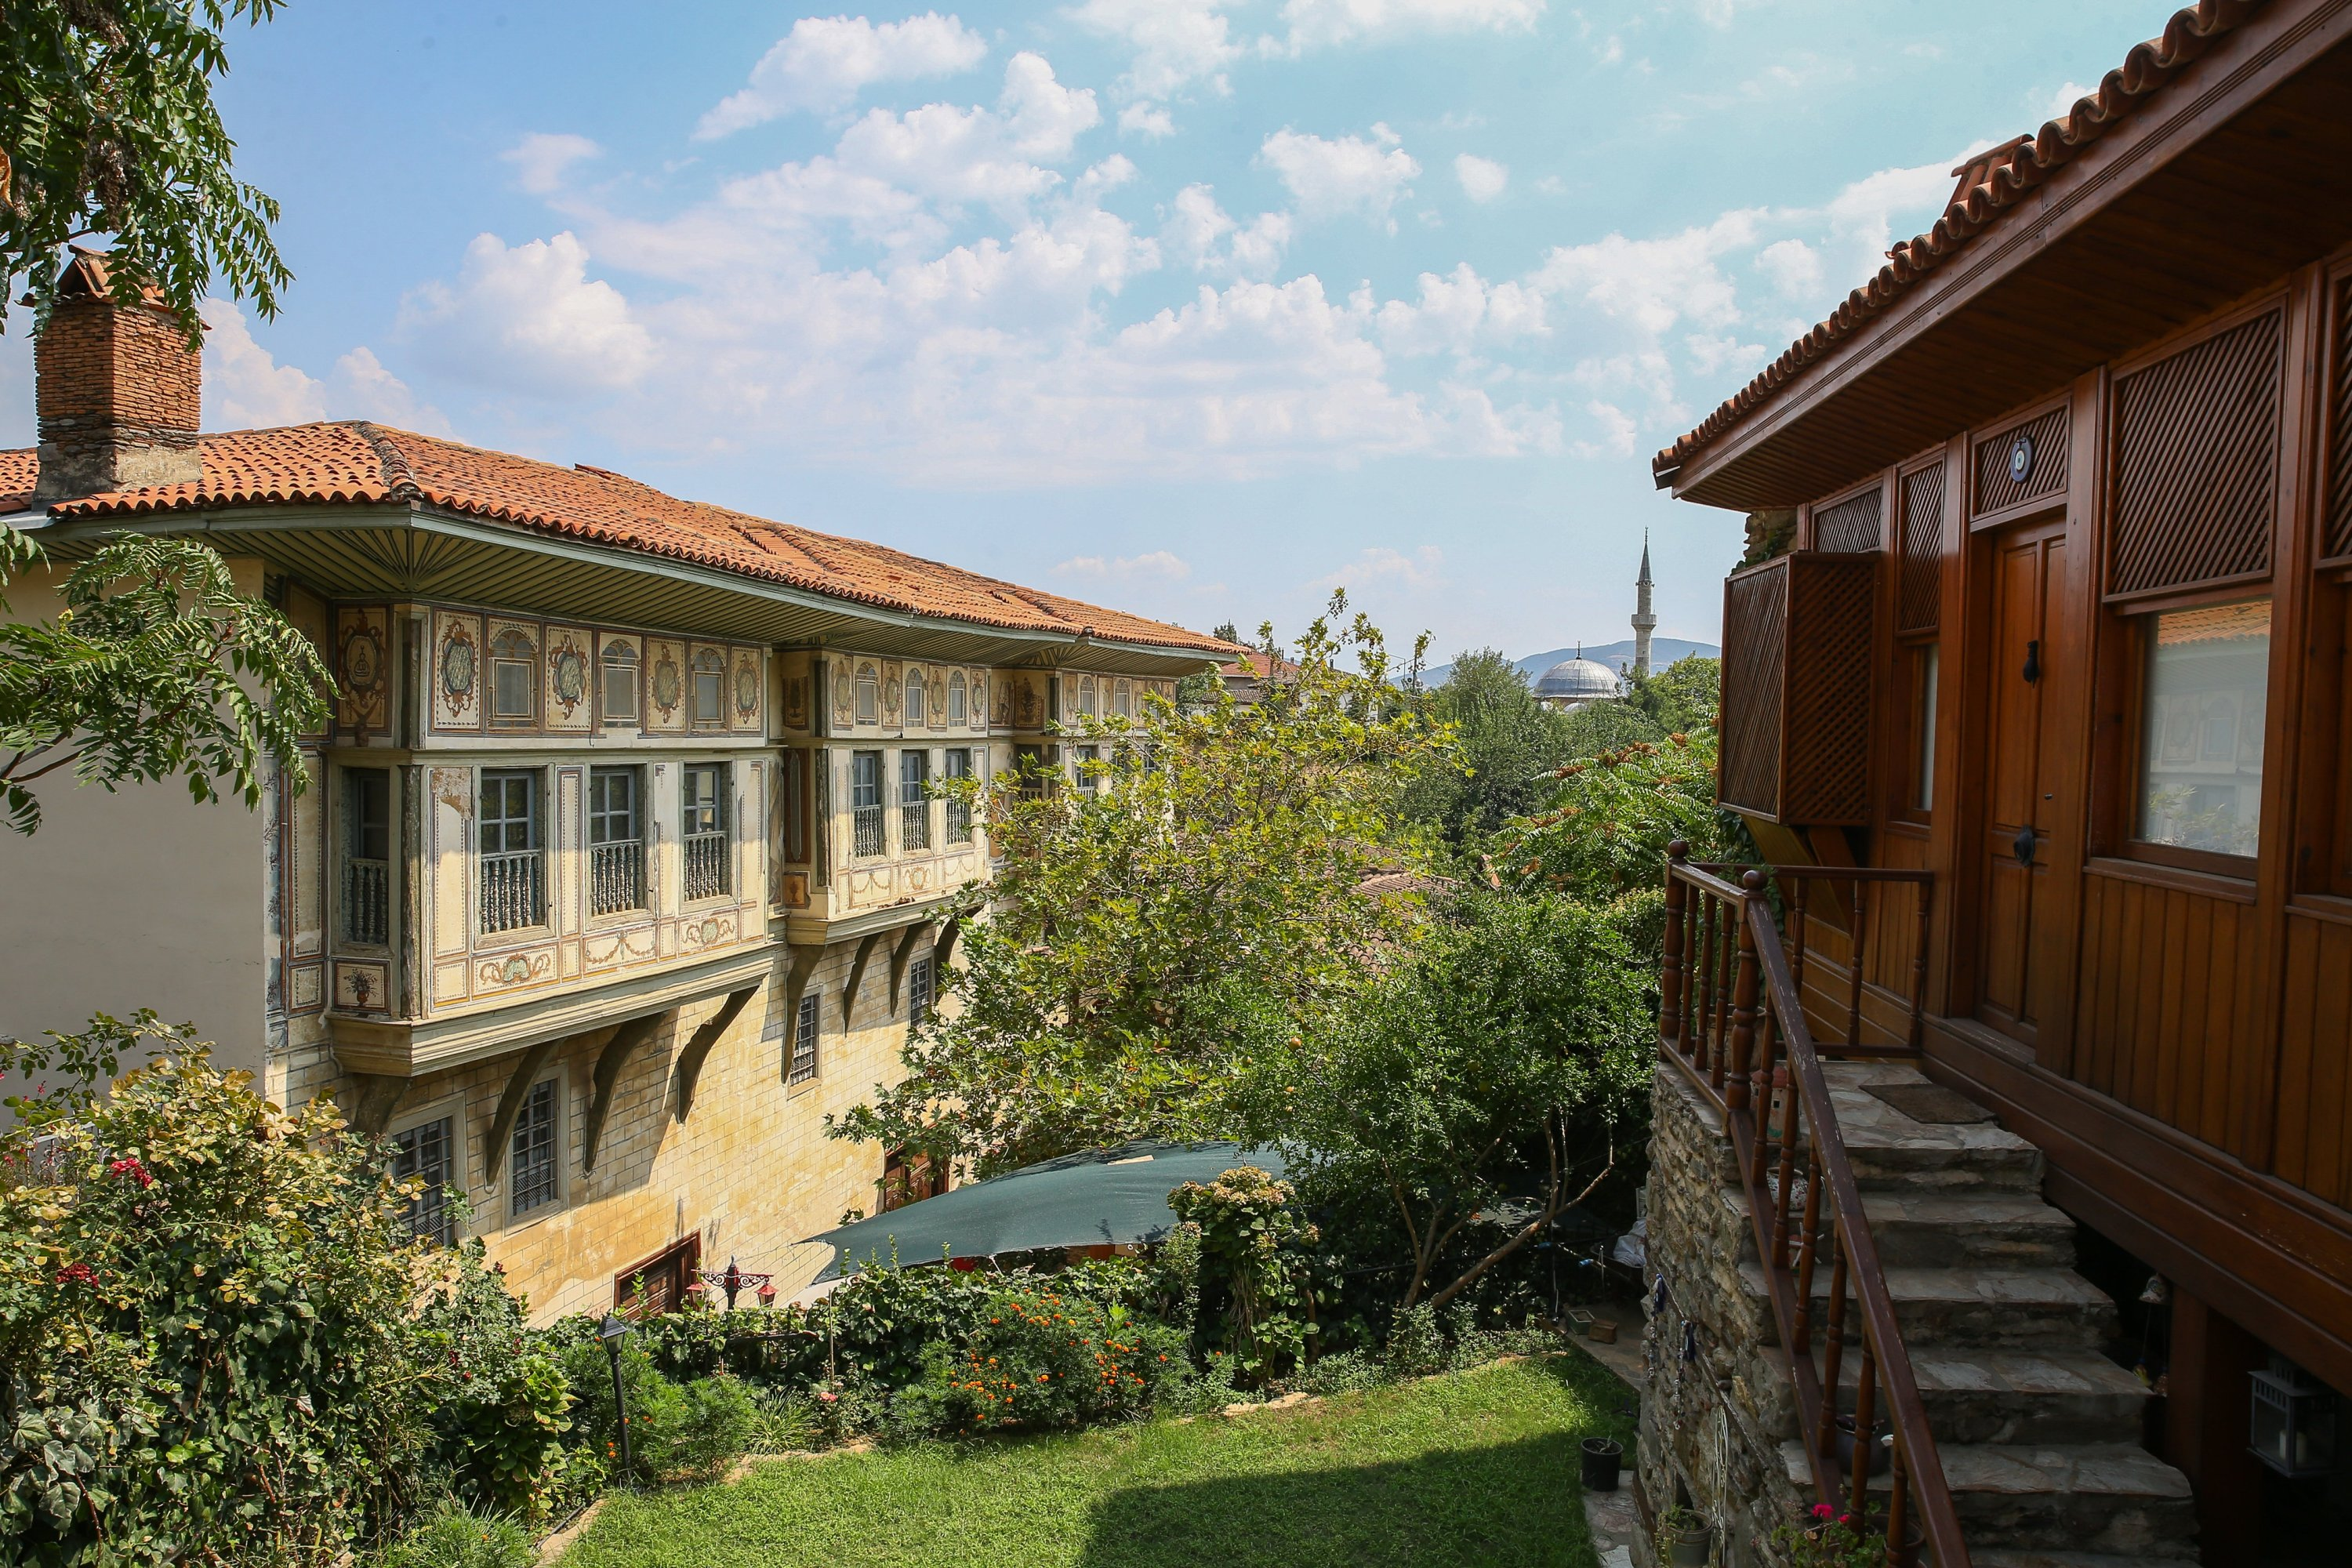 The Çakırağa Mansion is appreciated for its detailed wood workmanship and panoramic views. (AA PHOTO)